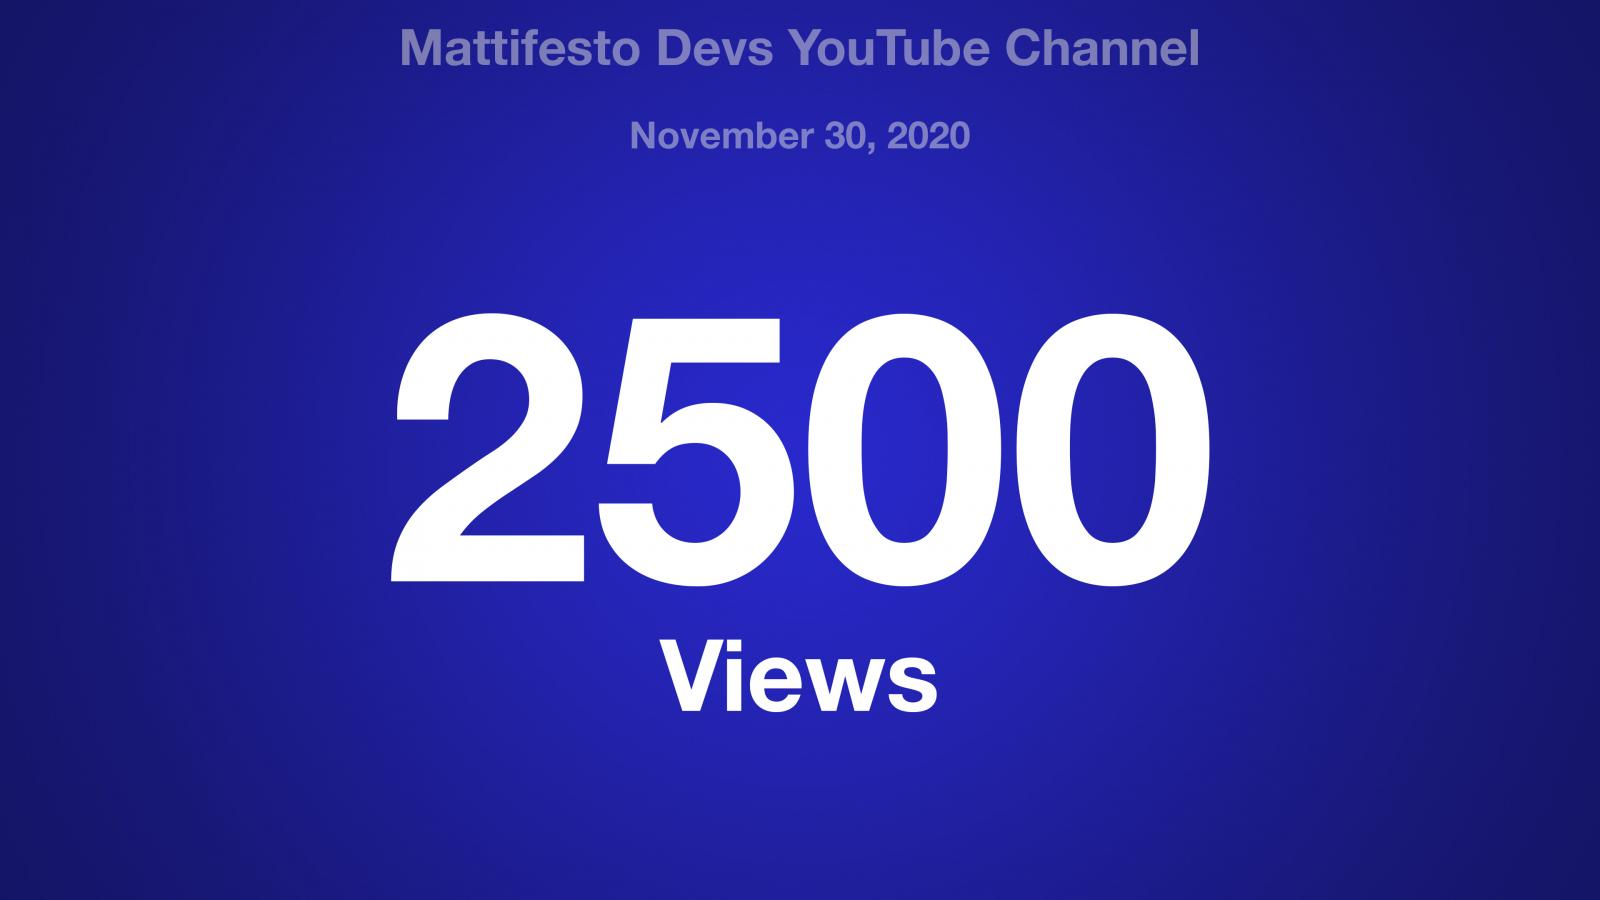 Mattifesto Devs YouTube Channel, November 30, 2020, 2500 Views